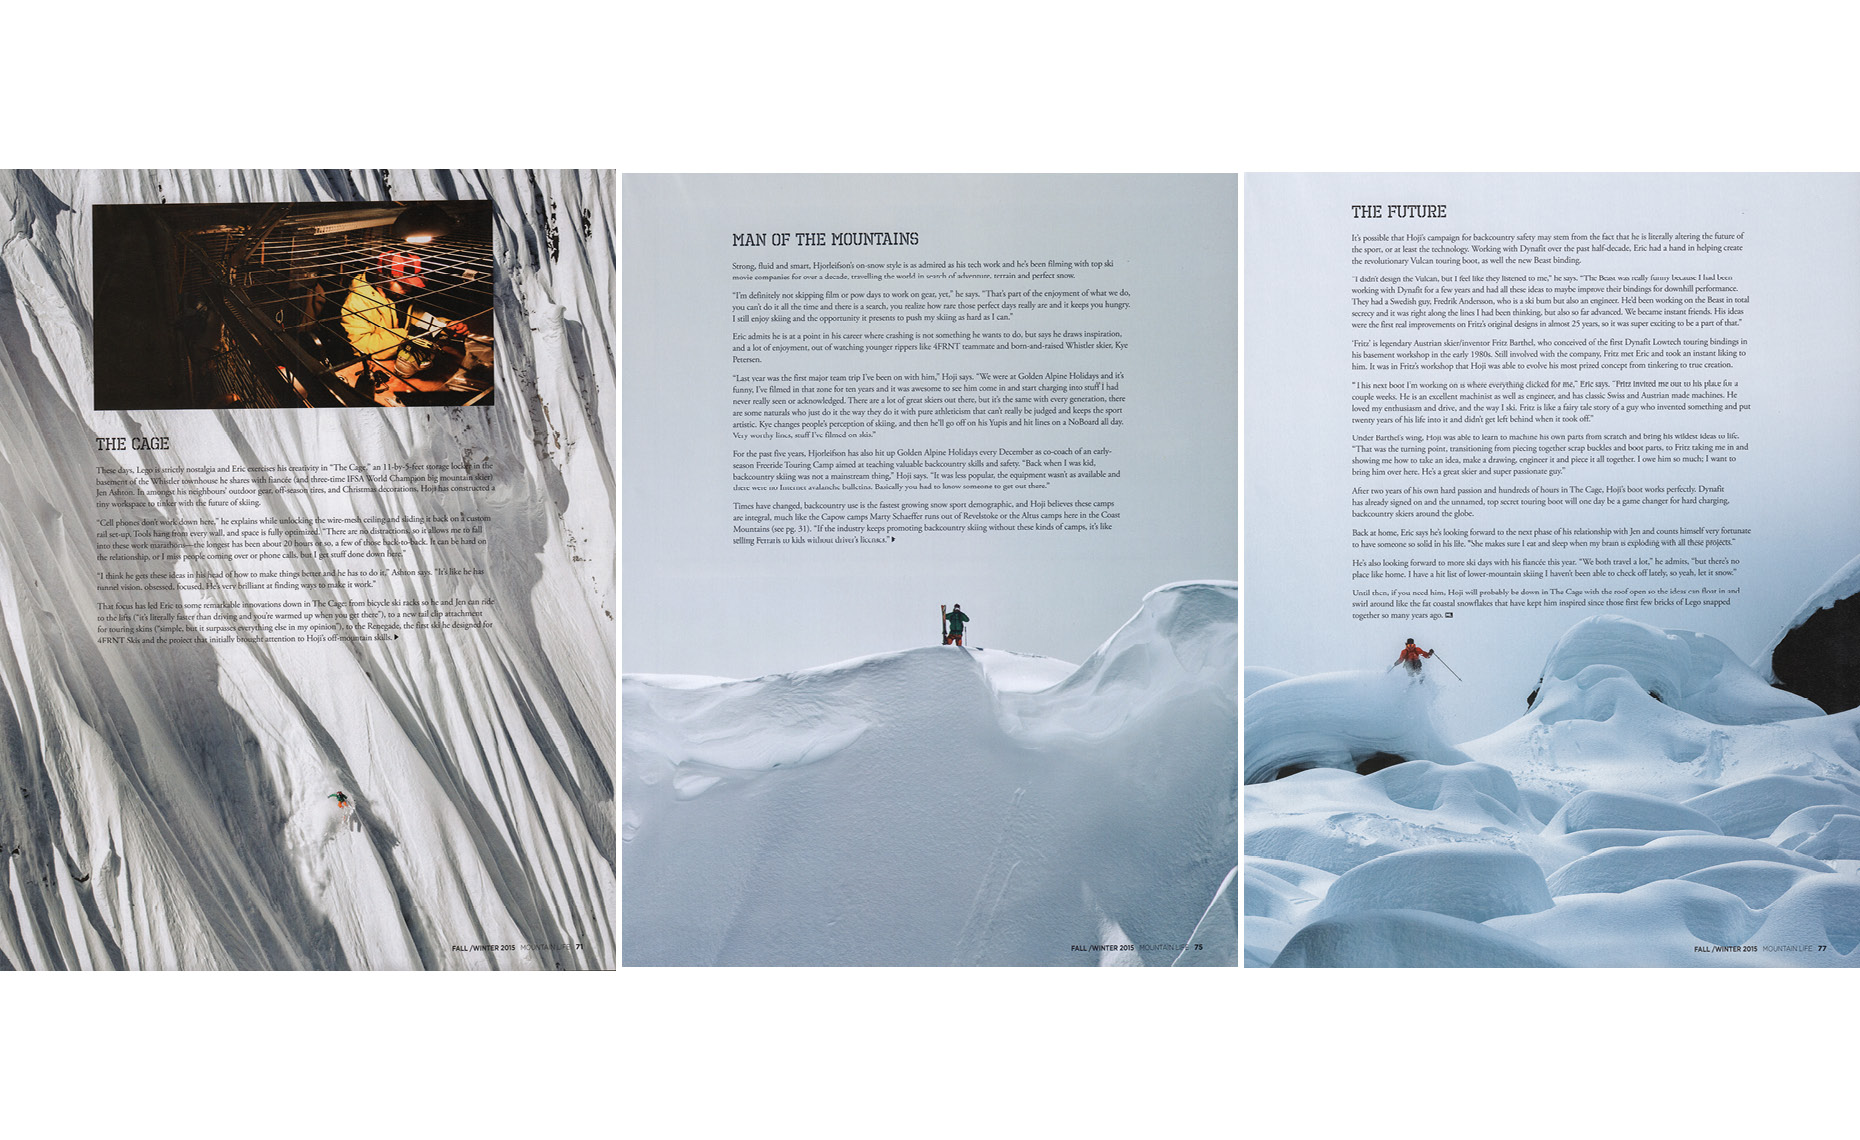 Pro skier Eric Hjorleifson in mountain life magazine article.